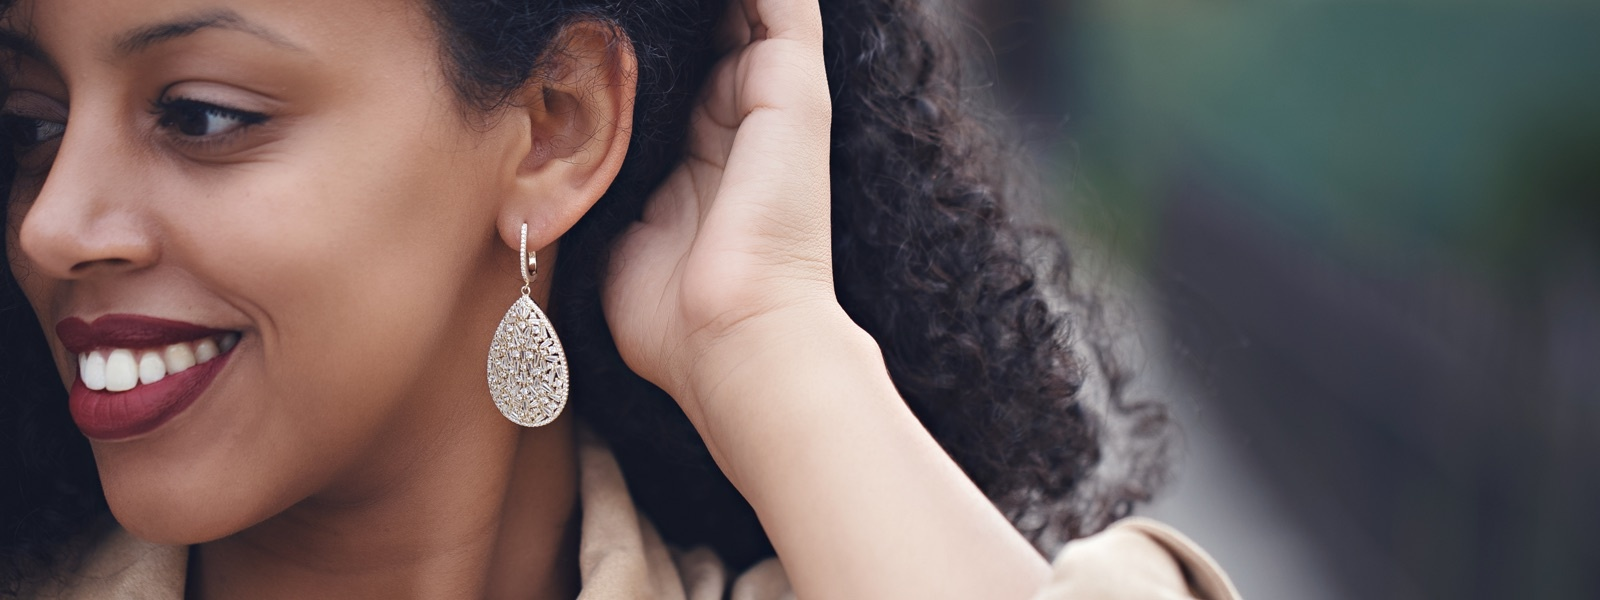 Bella Luce teardrop earring